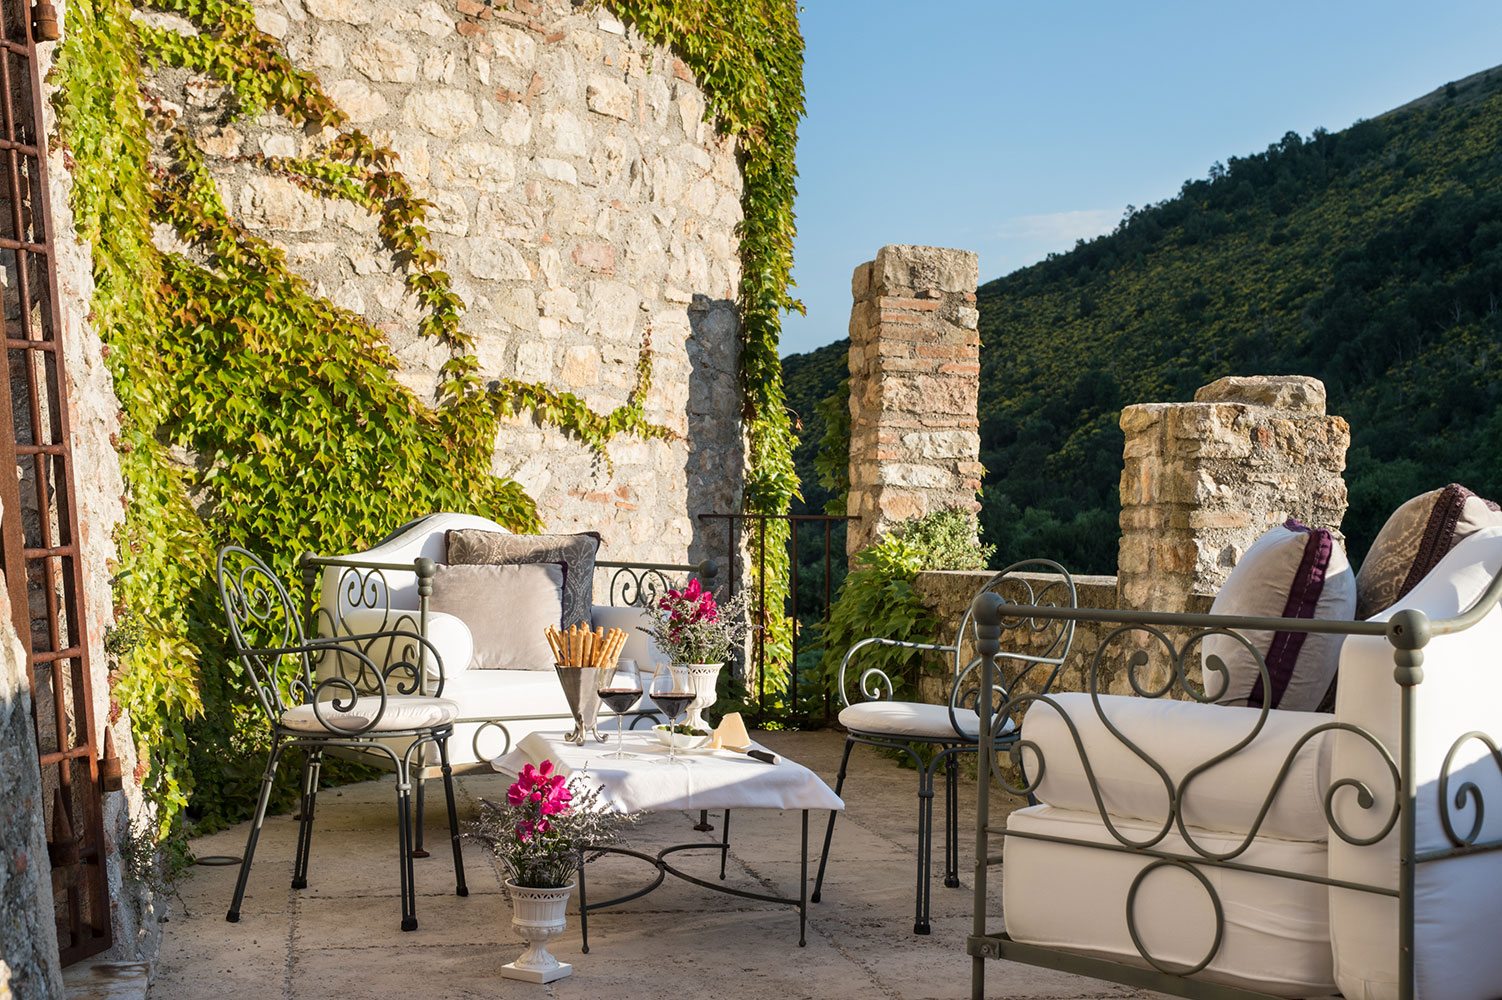 Castello Di Procopio Outdoors 18